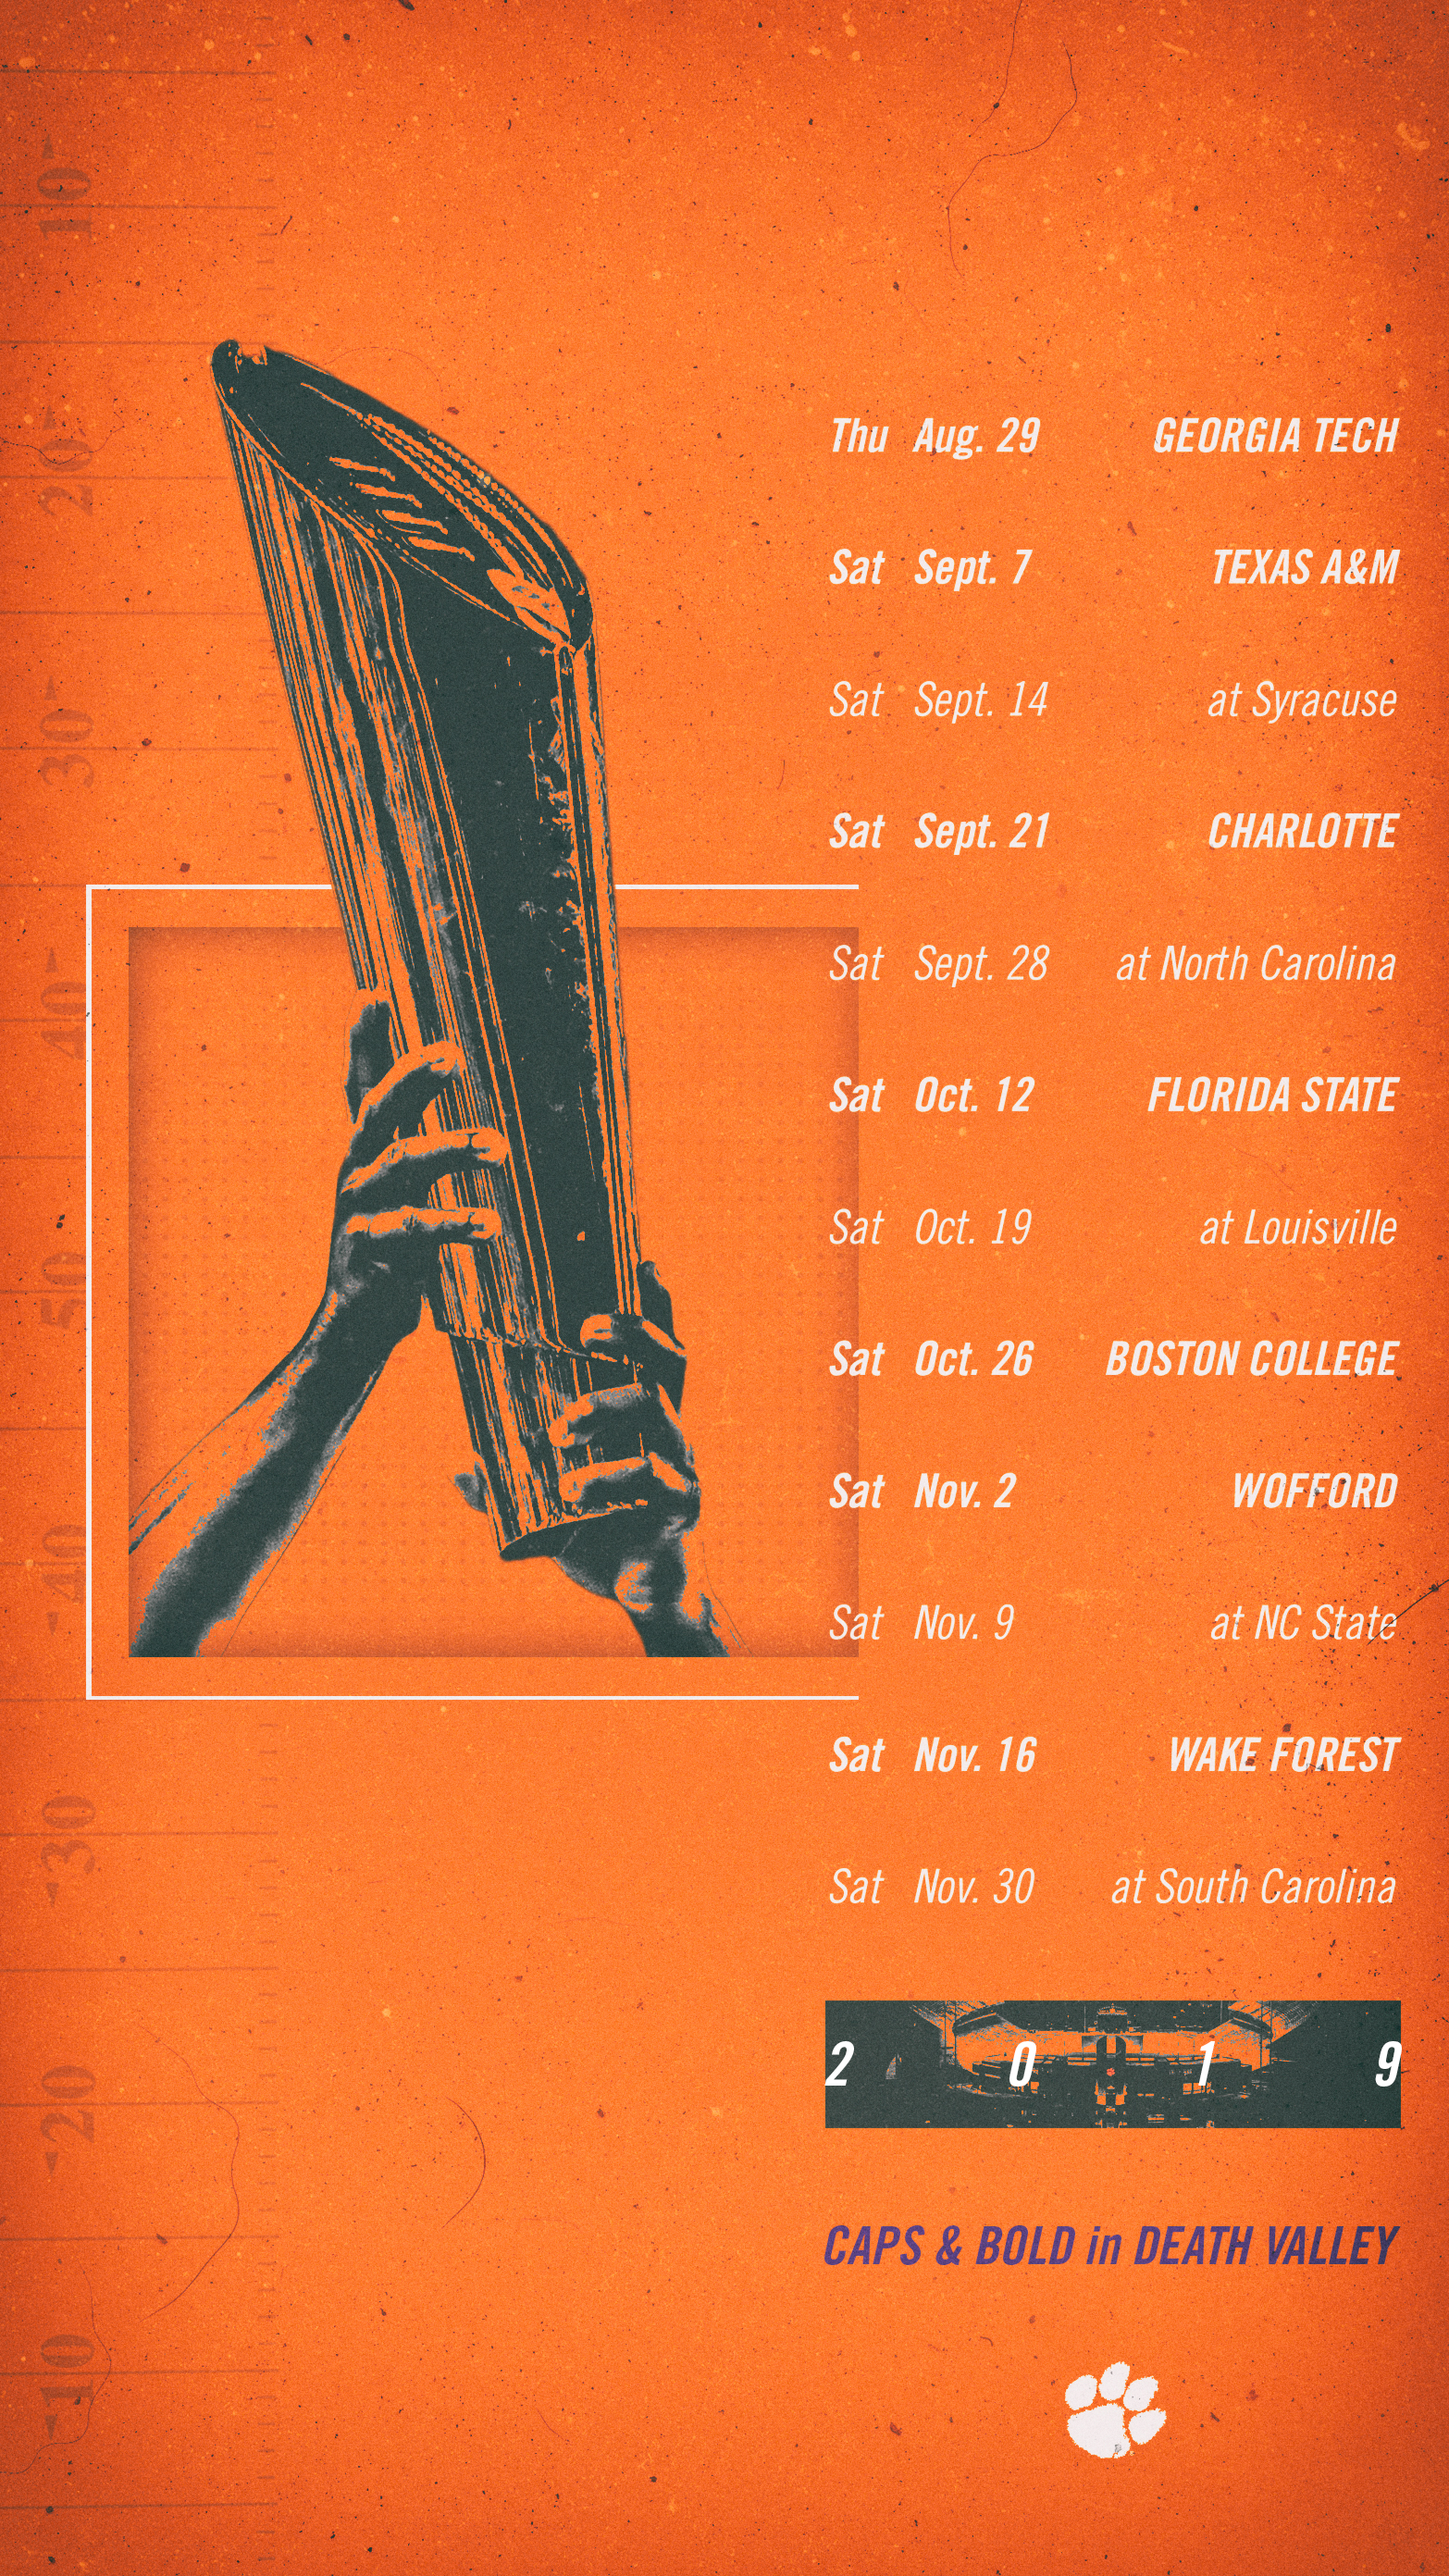 Clemson Calendar 2019 Clemson Announces 2019 Football Schedule – Clemson Tigers Official